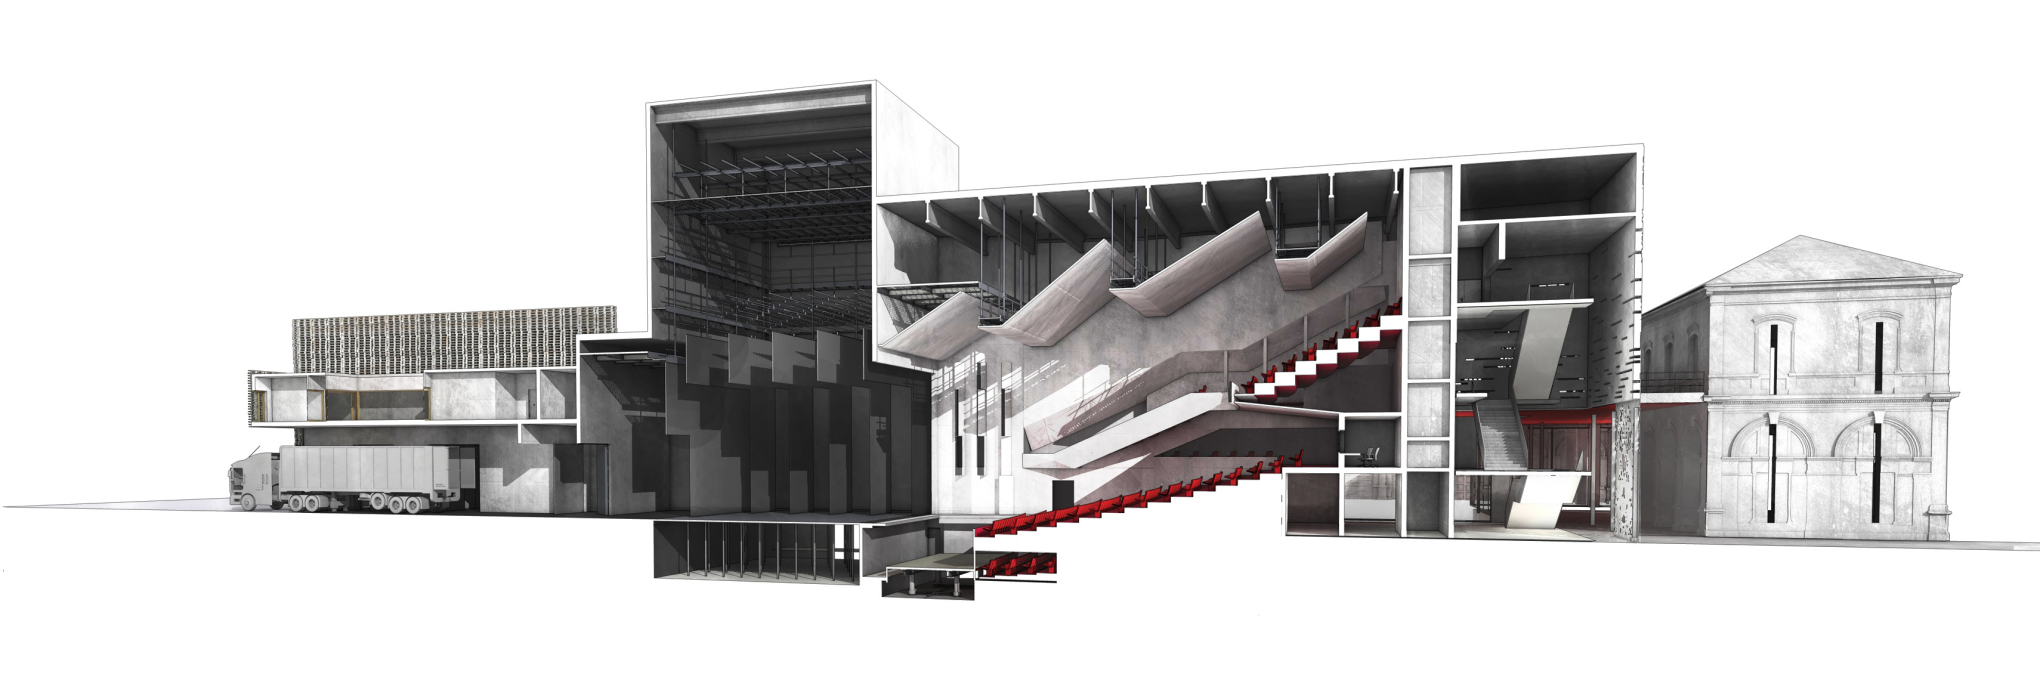 Longitudinal sectional perspective, cut north-south through theater auditorium. (Image: K-architectures)